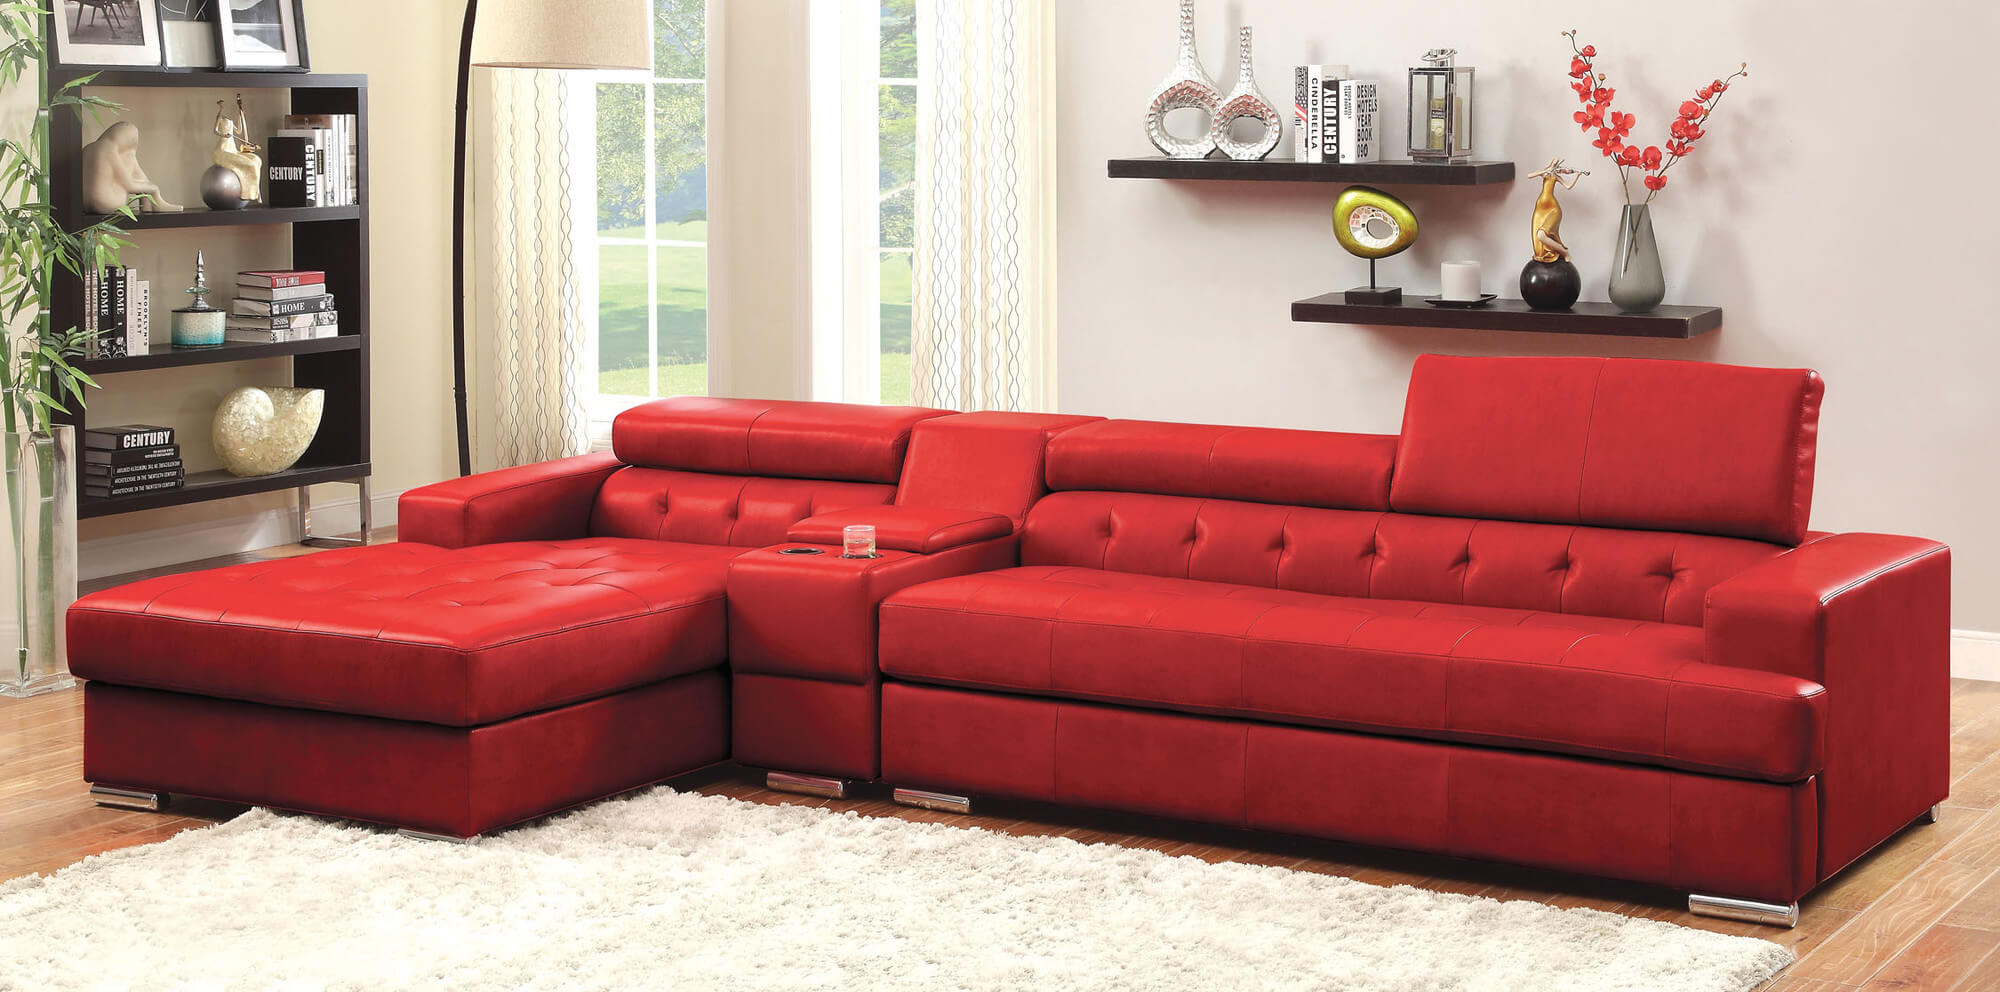 red sectional sofa 18 stylish modern red sectional sofas WZSVRJG